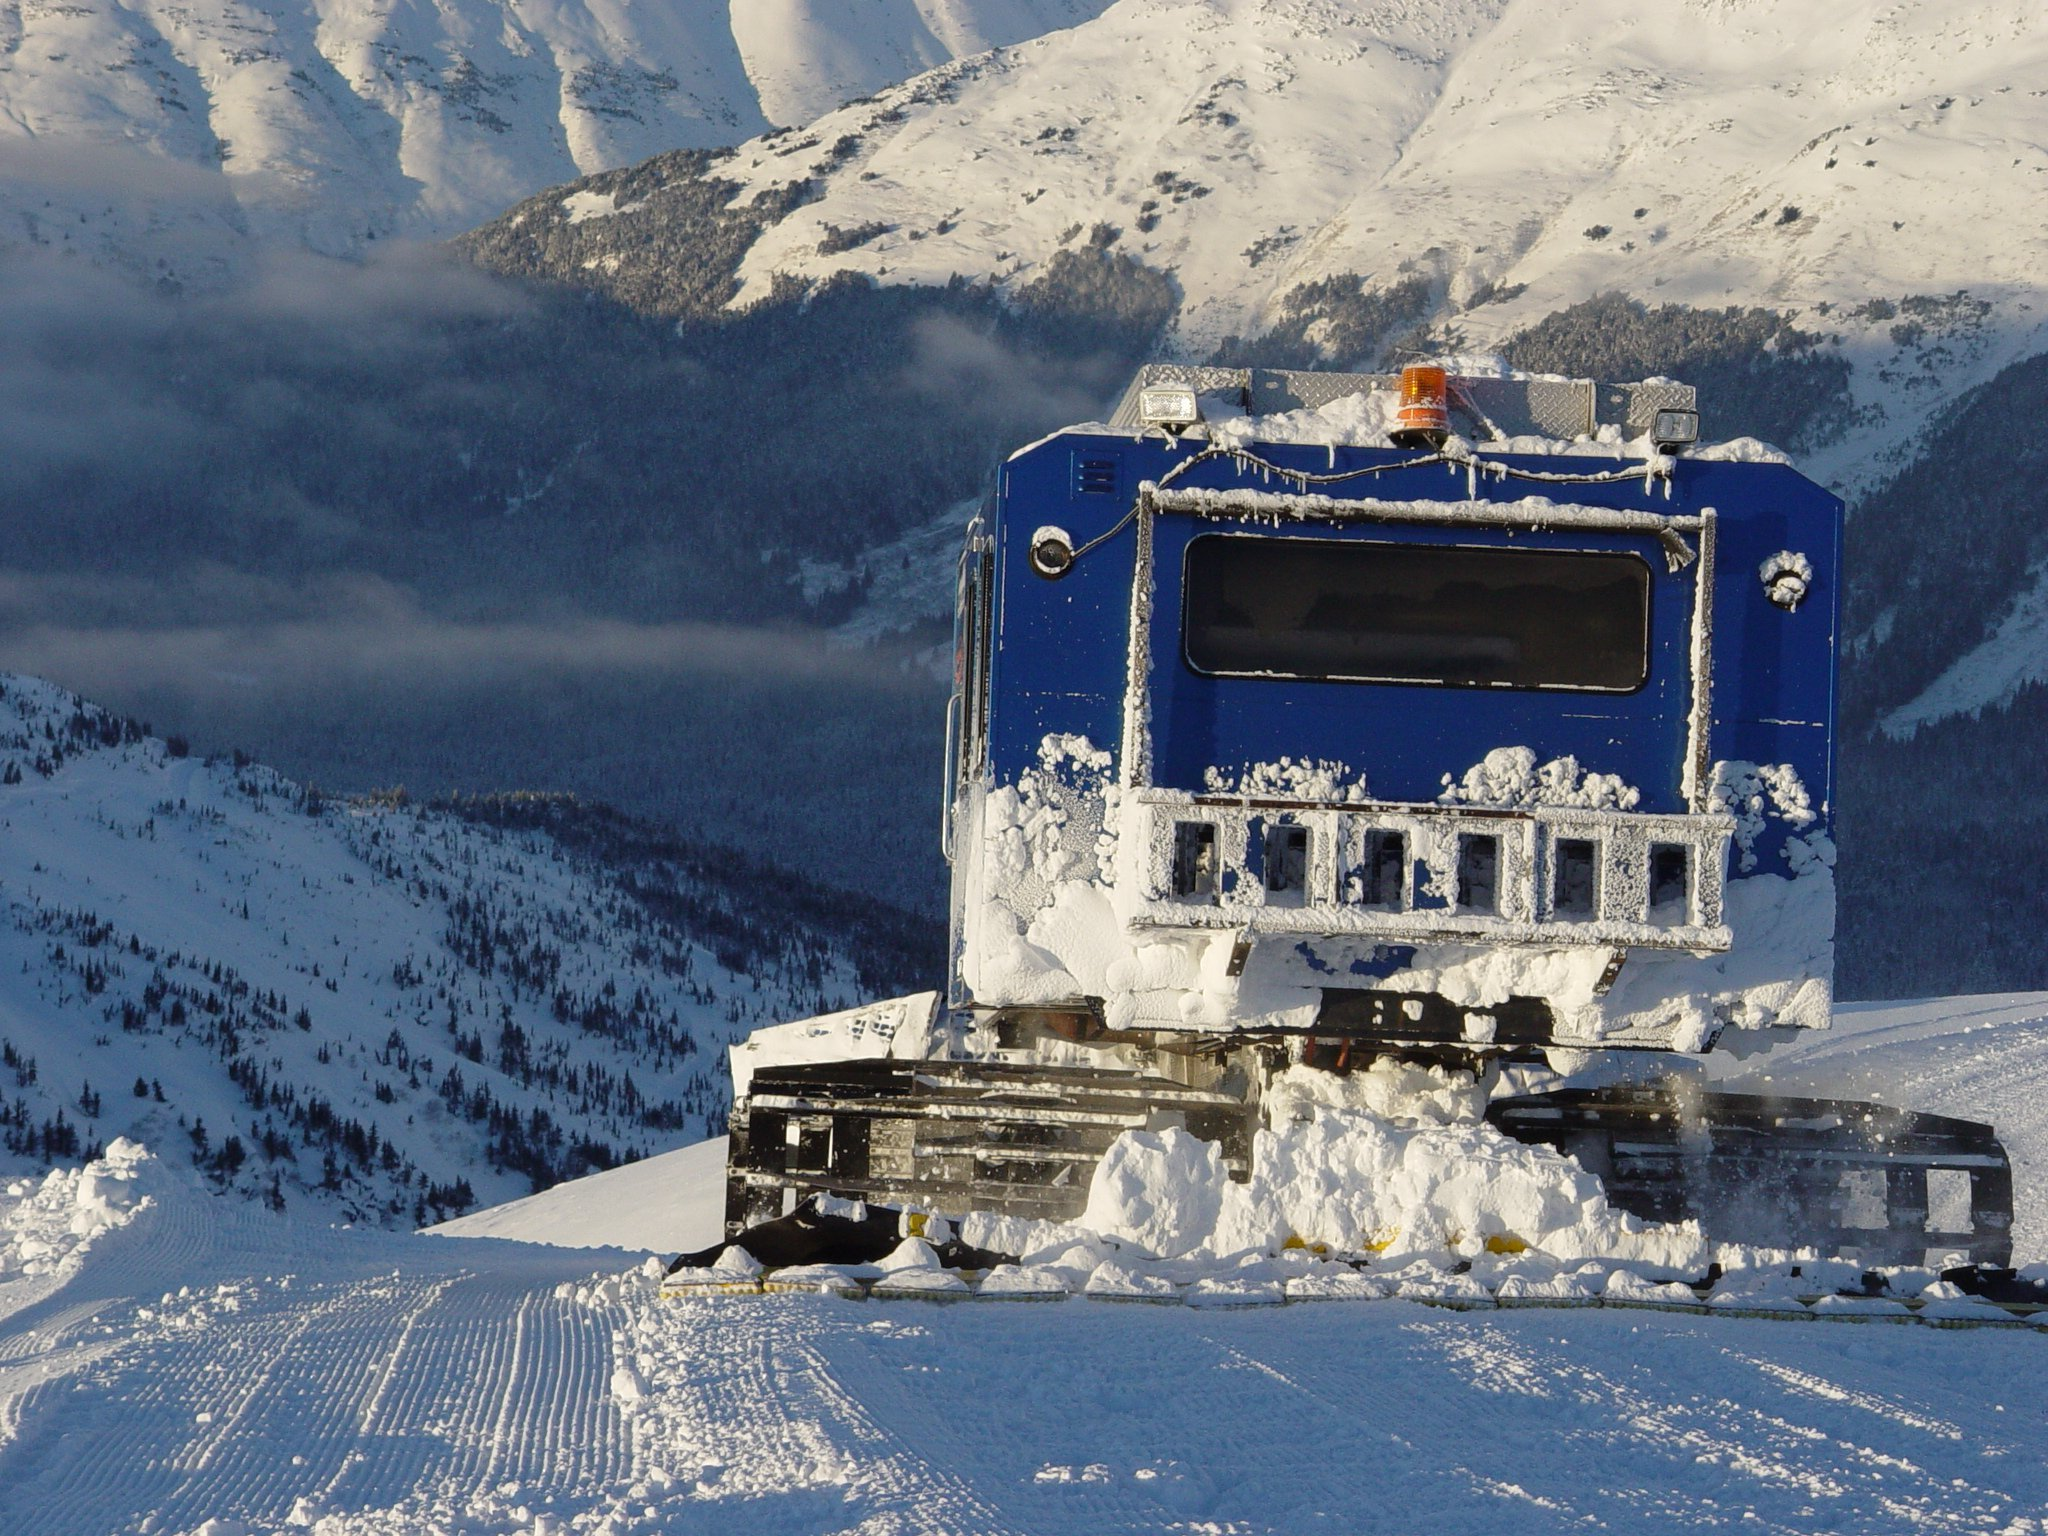 catskiing comes right after heliskiing